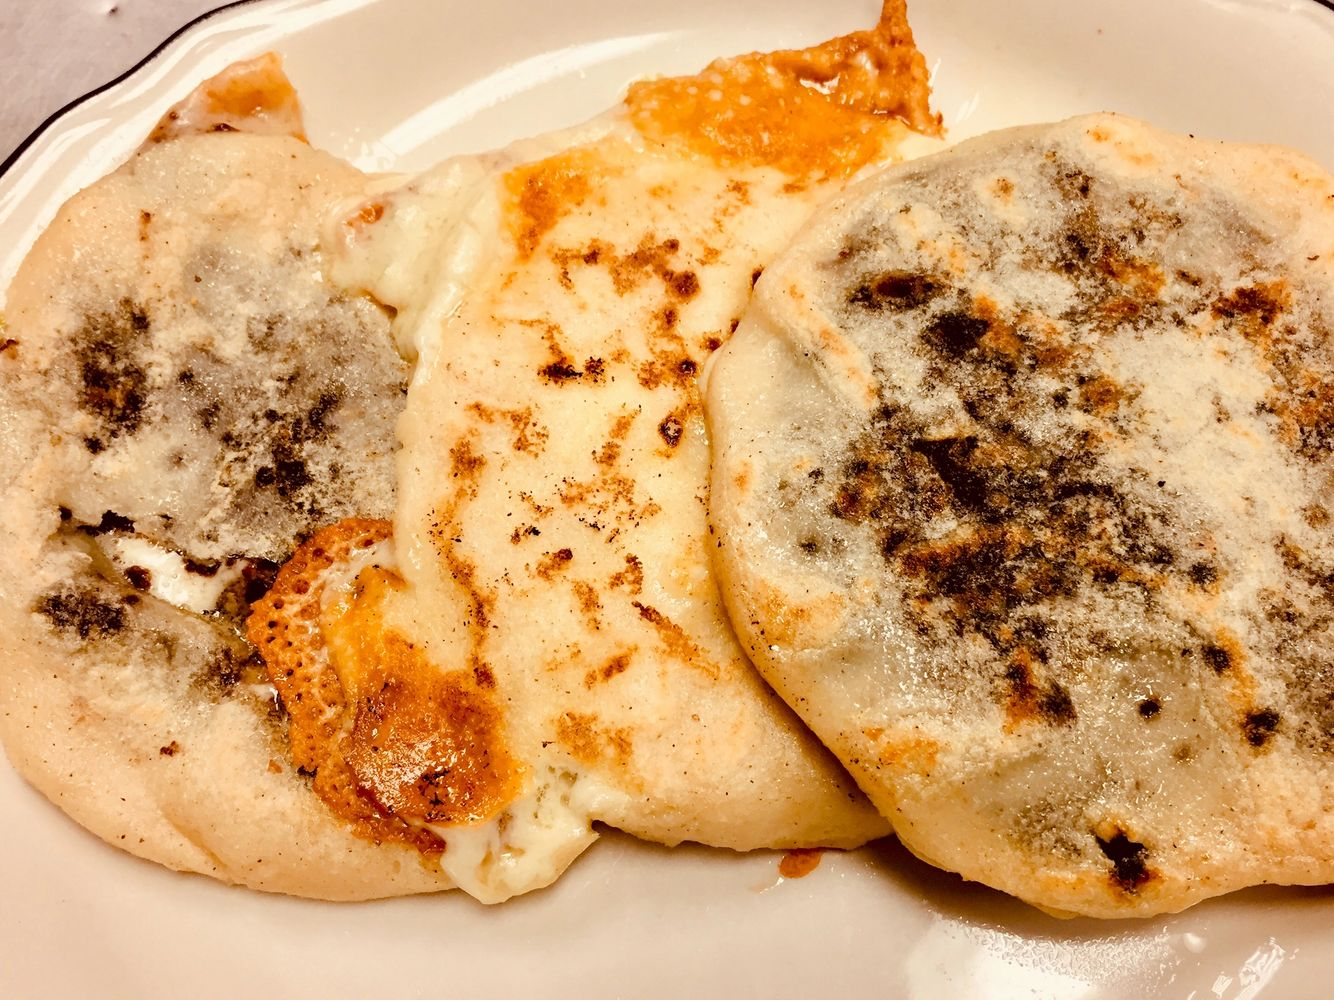 Three round, overlapping pupusas on a plate. The middle pupusa has crispy cheese edges.